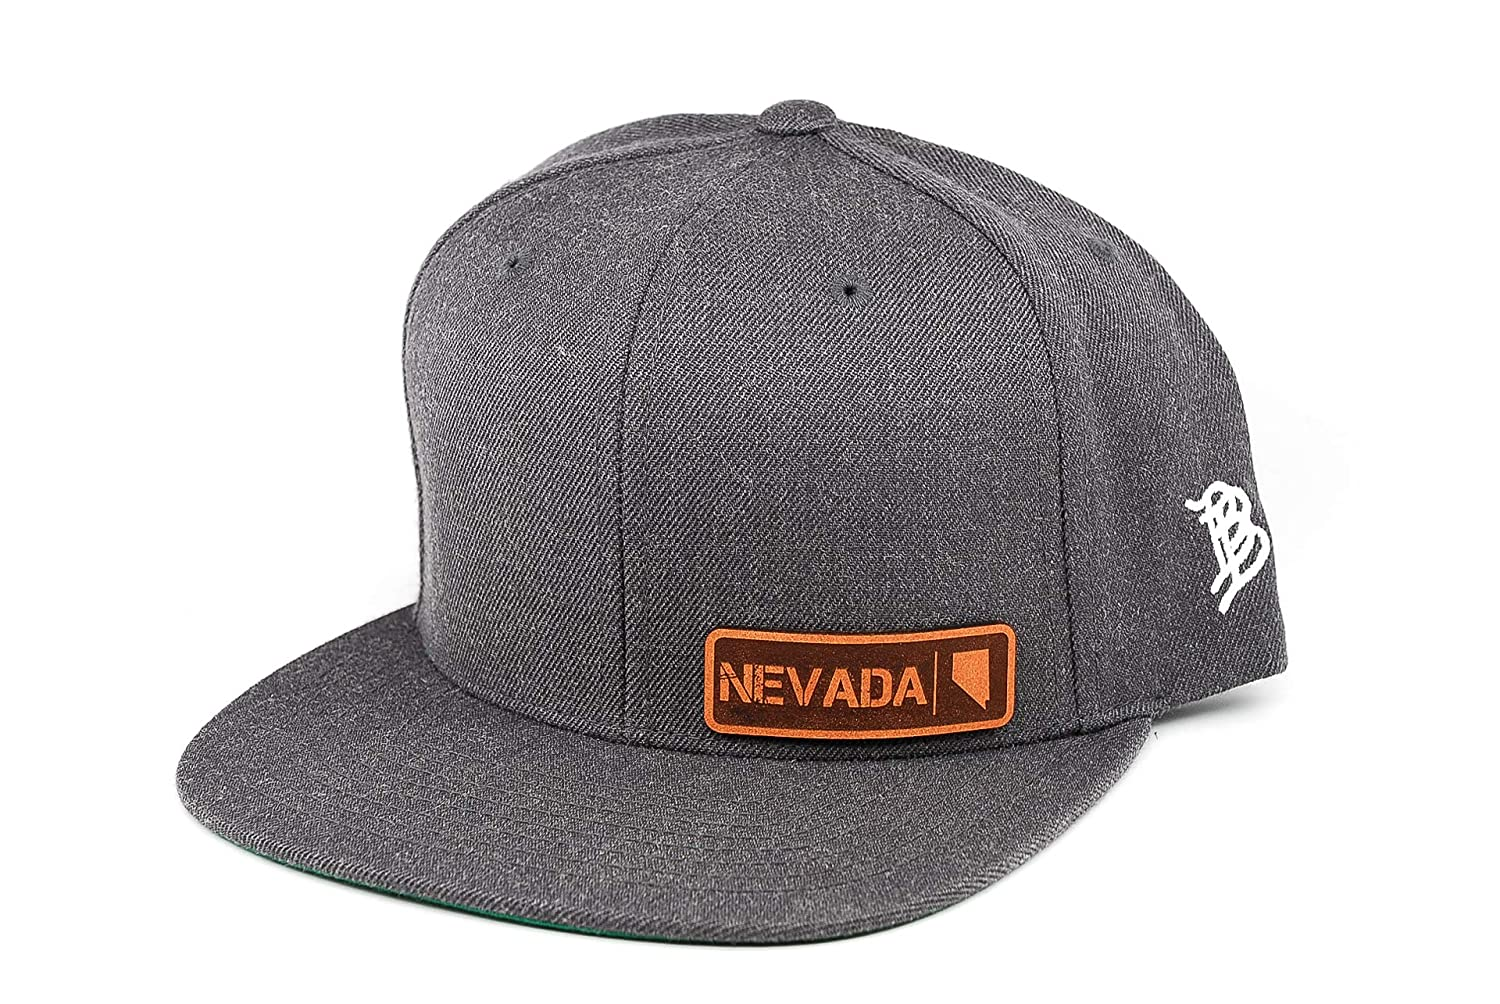 Branded Bills /'Nevada Native Leather Patch Snapback Hat OSFA//Charcoal